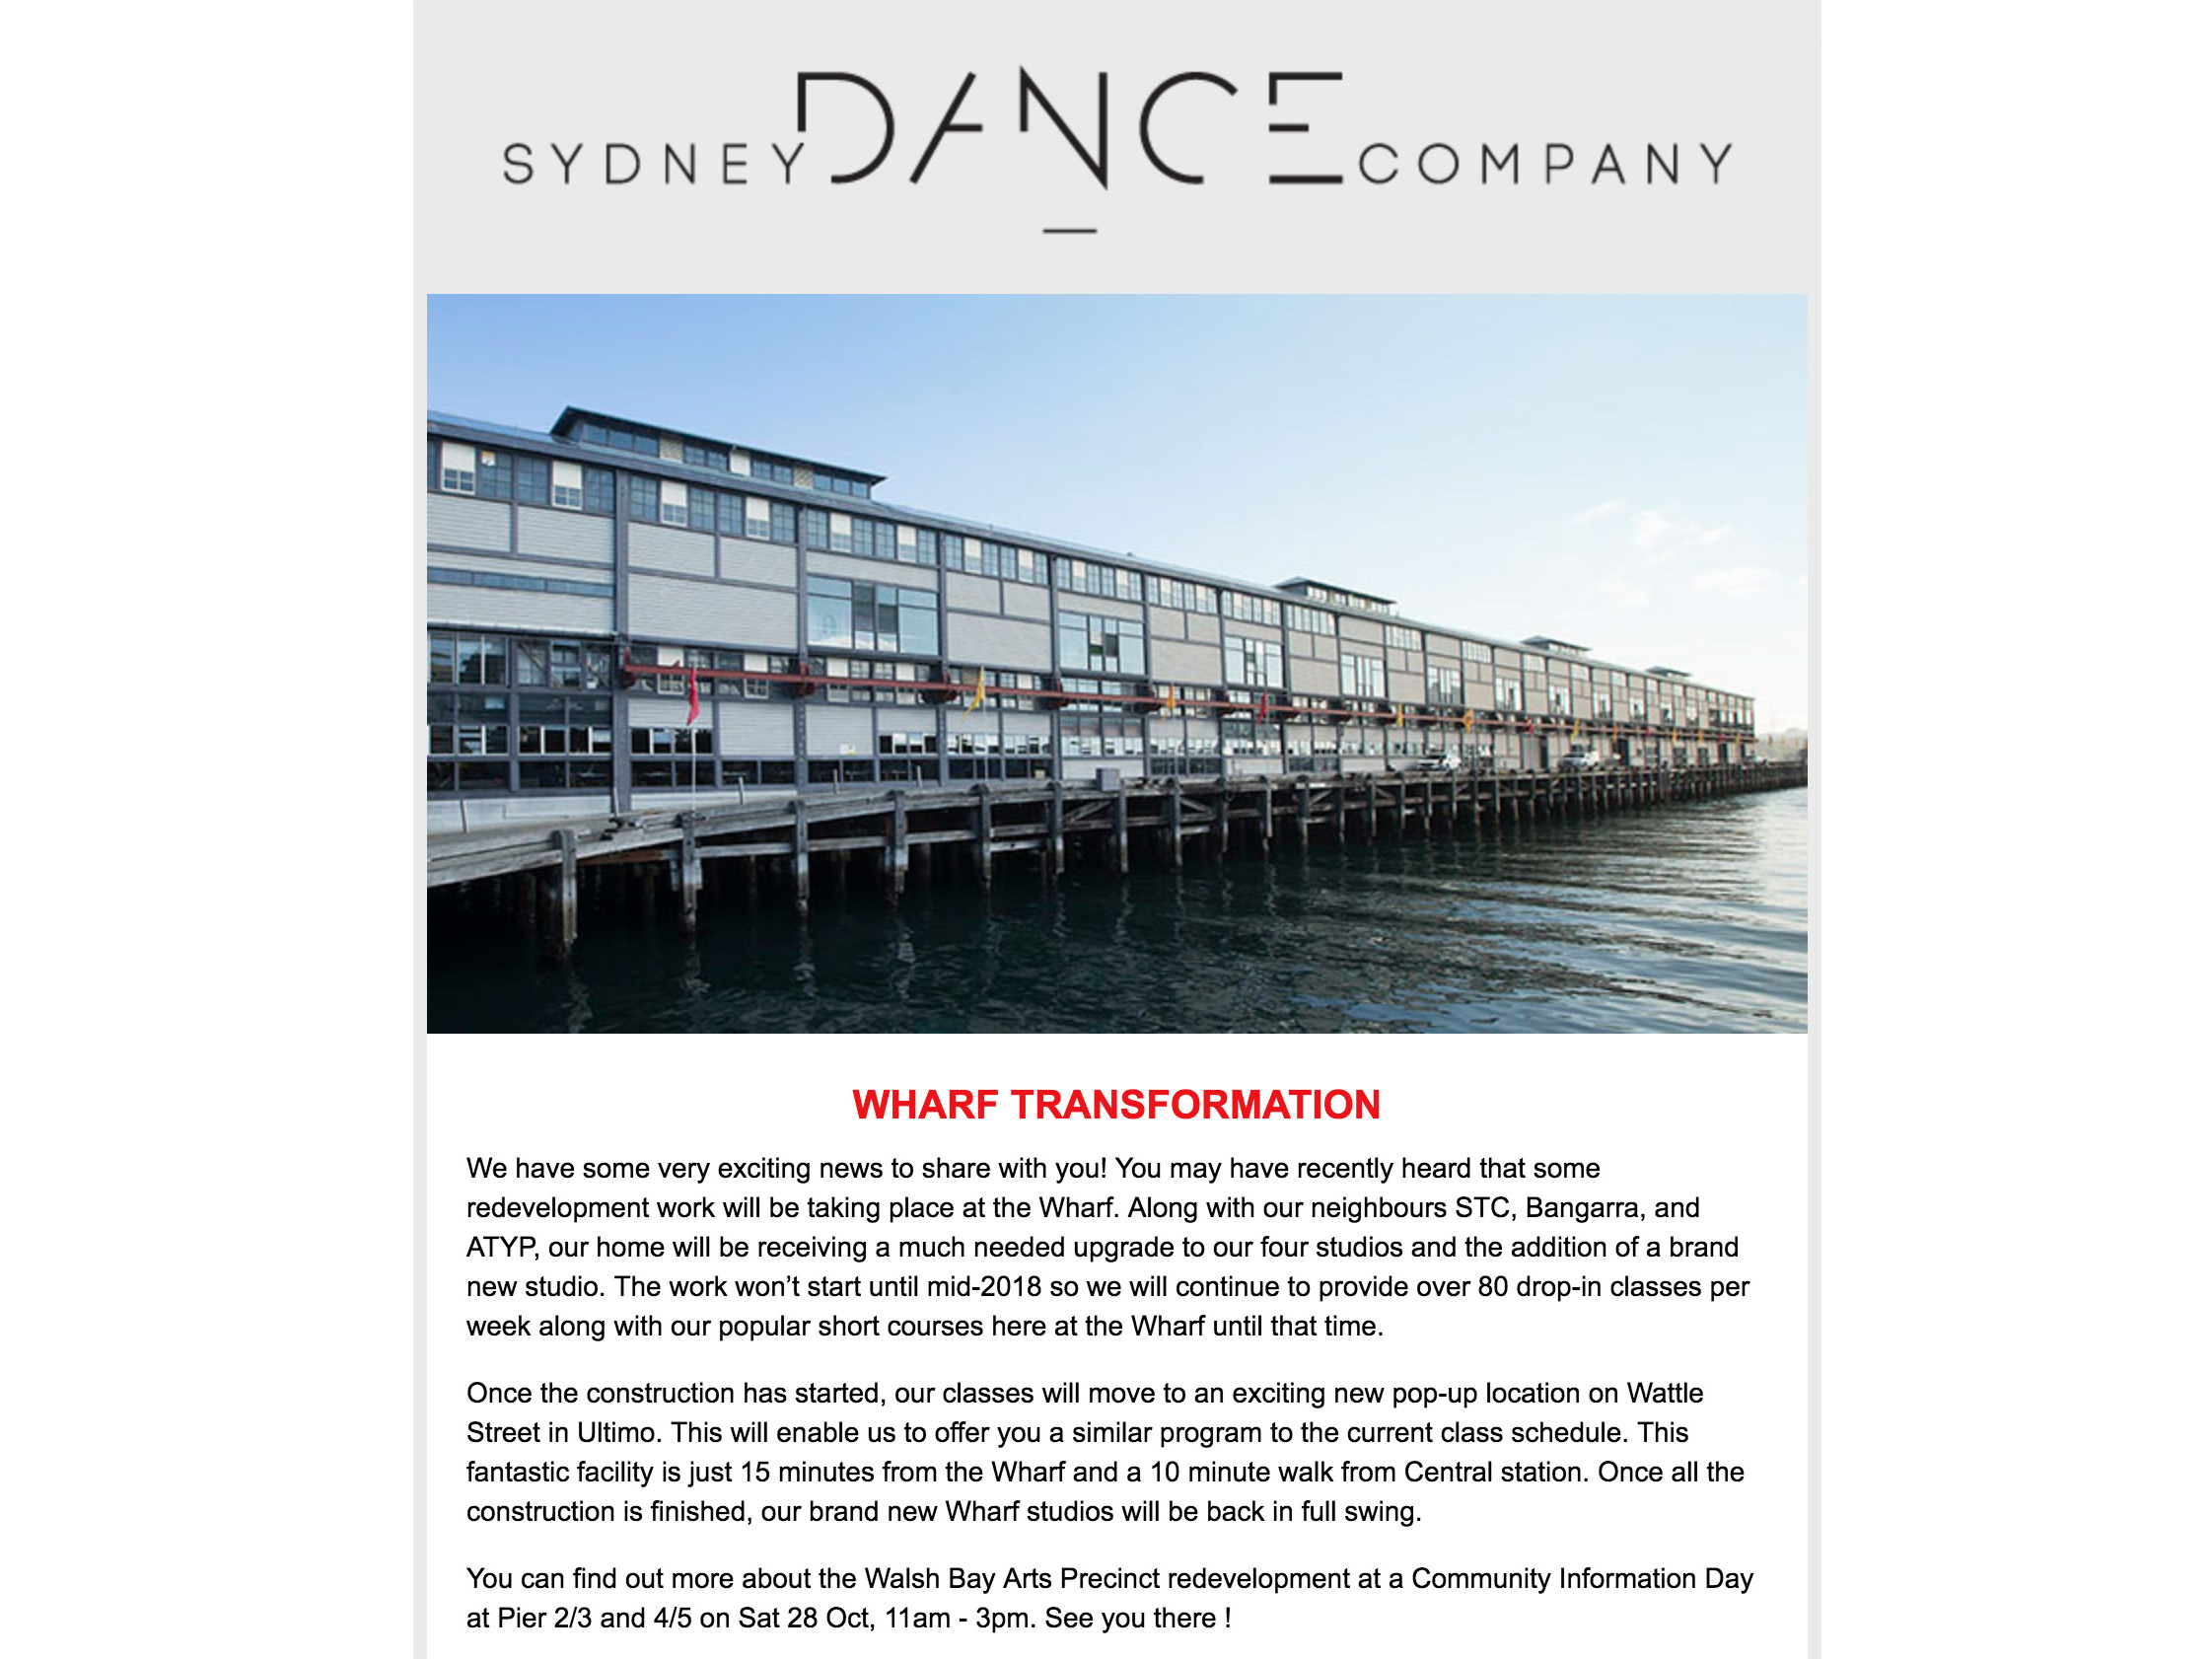 SDC Wharf Transformation.jpg